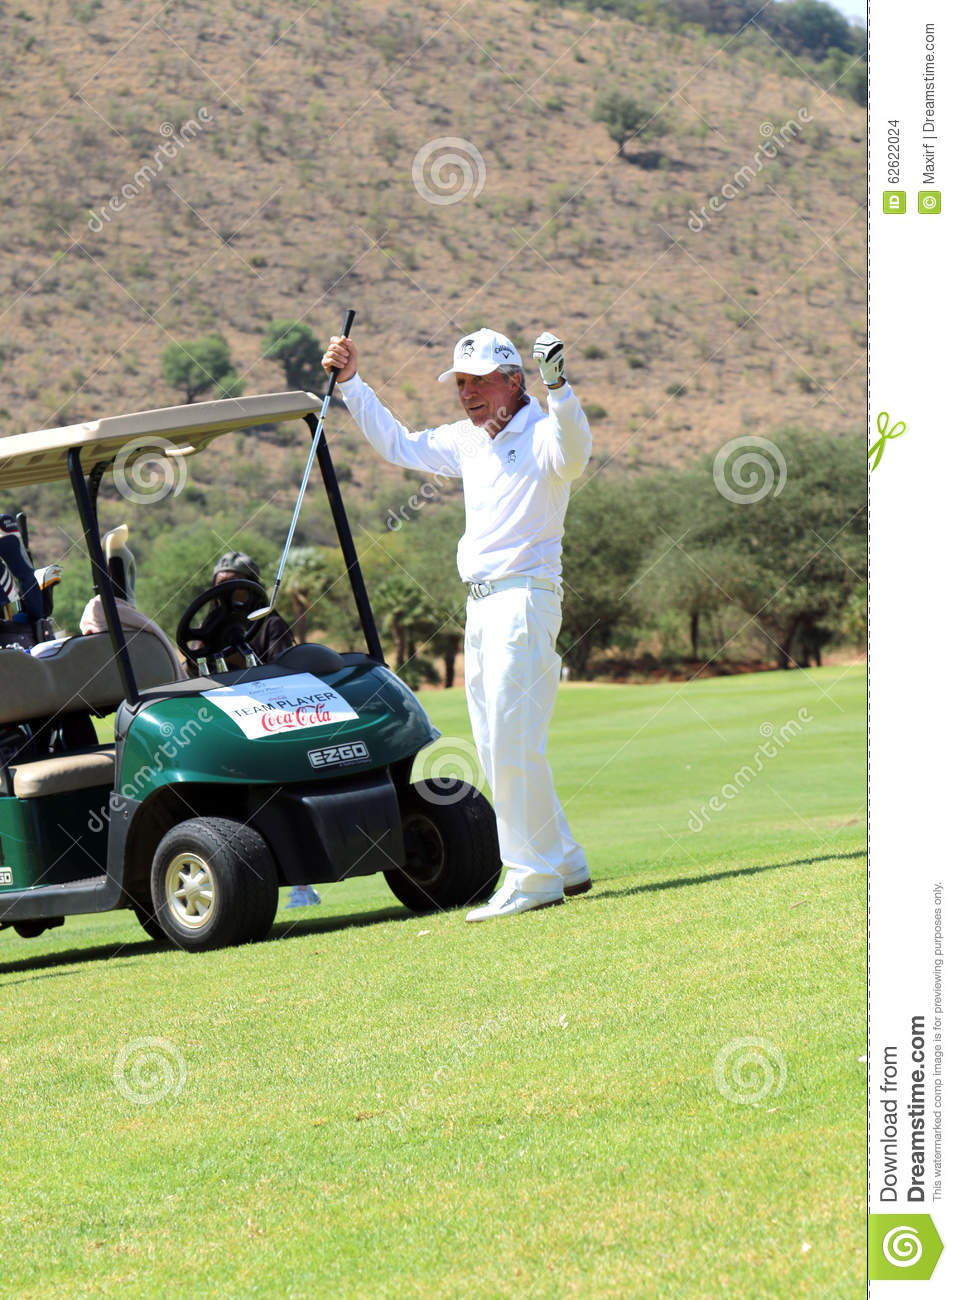 Tournament presenter and grand master Gary Player after the perfect drop shop at the 18th on November 2015 in South Africa